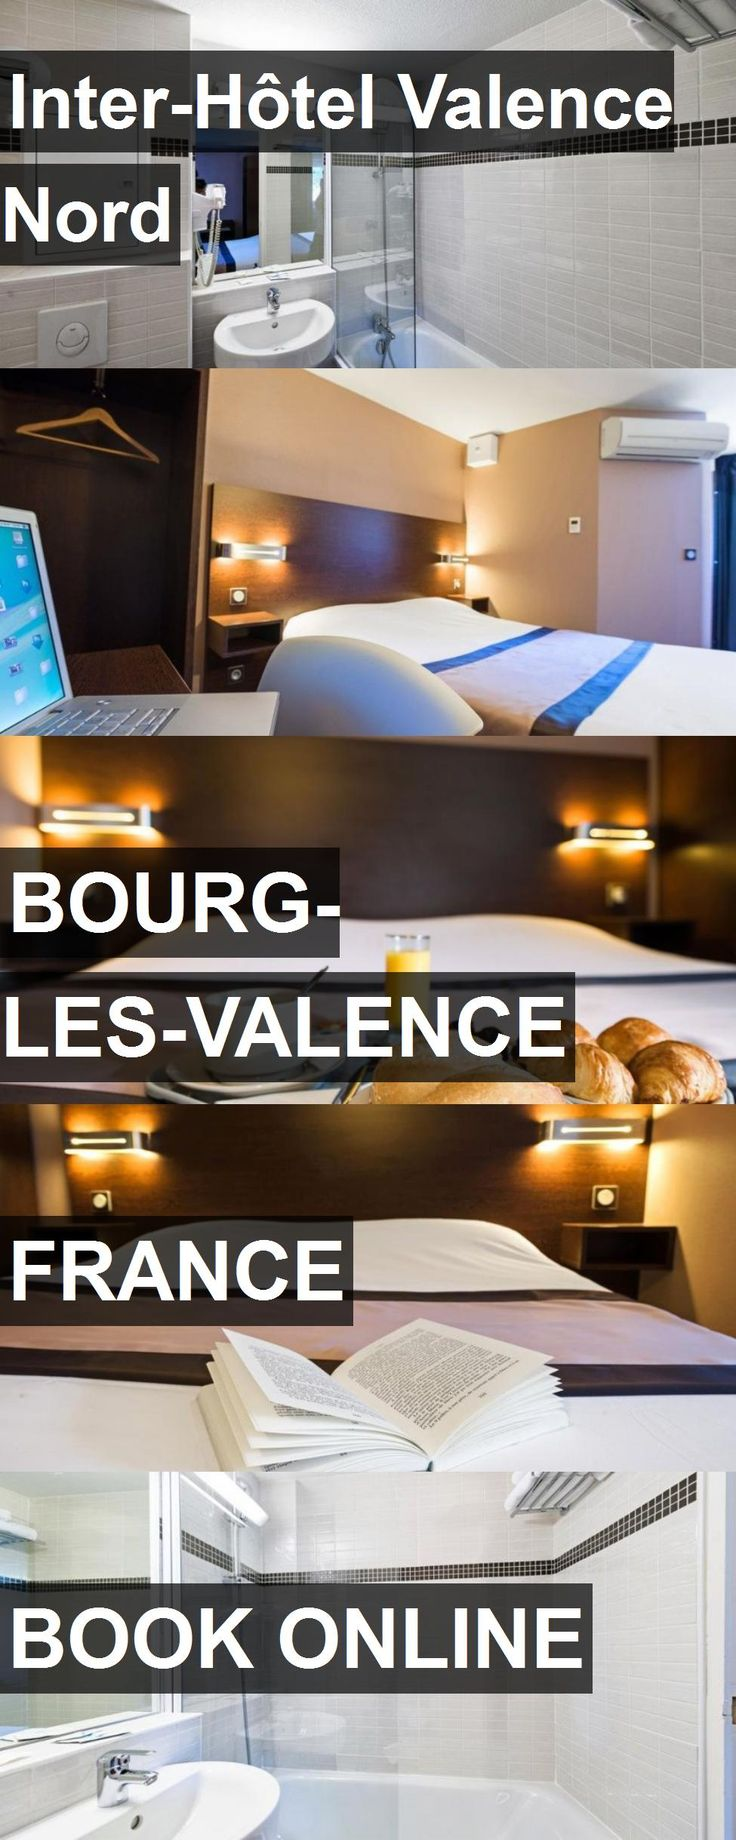 Hotel Inter-Hôtel Valence Nord in Bourg-les-Valence, France. For more information, photos, reviews and best prices please follow the link. #France #Bourg-les-Valence #travel #vacation #hotel